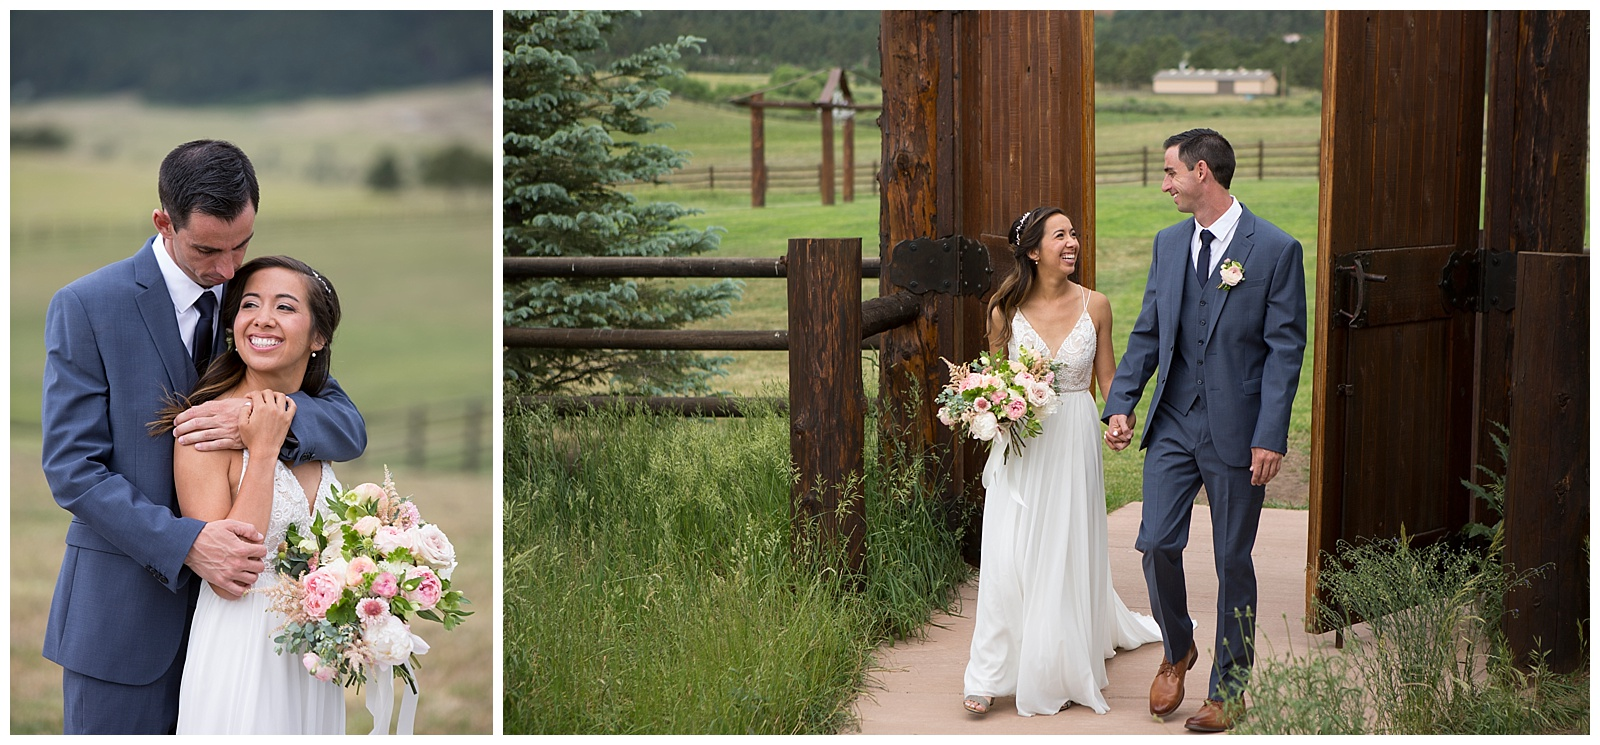 Spruce Mountain Ranch Wedding 3.jpg